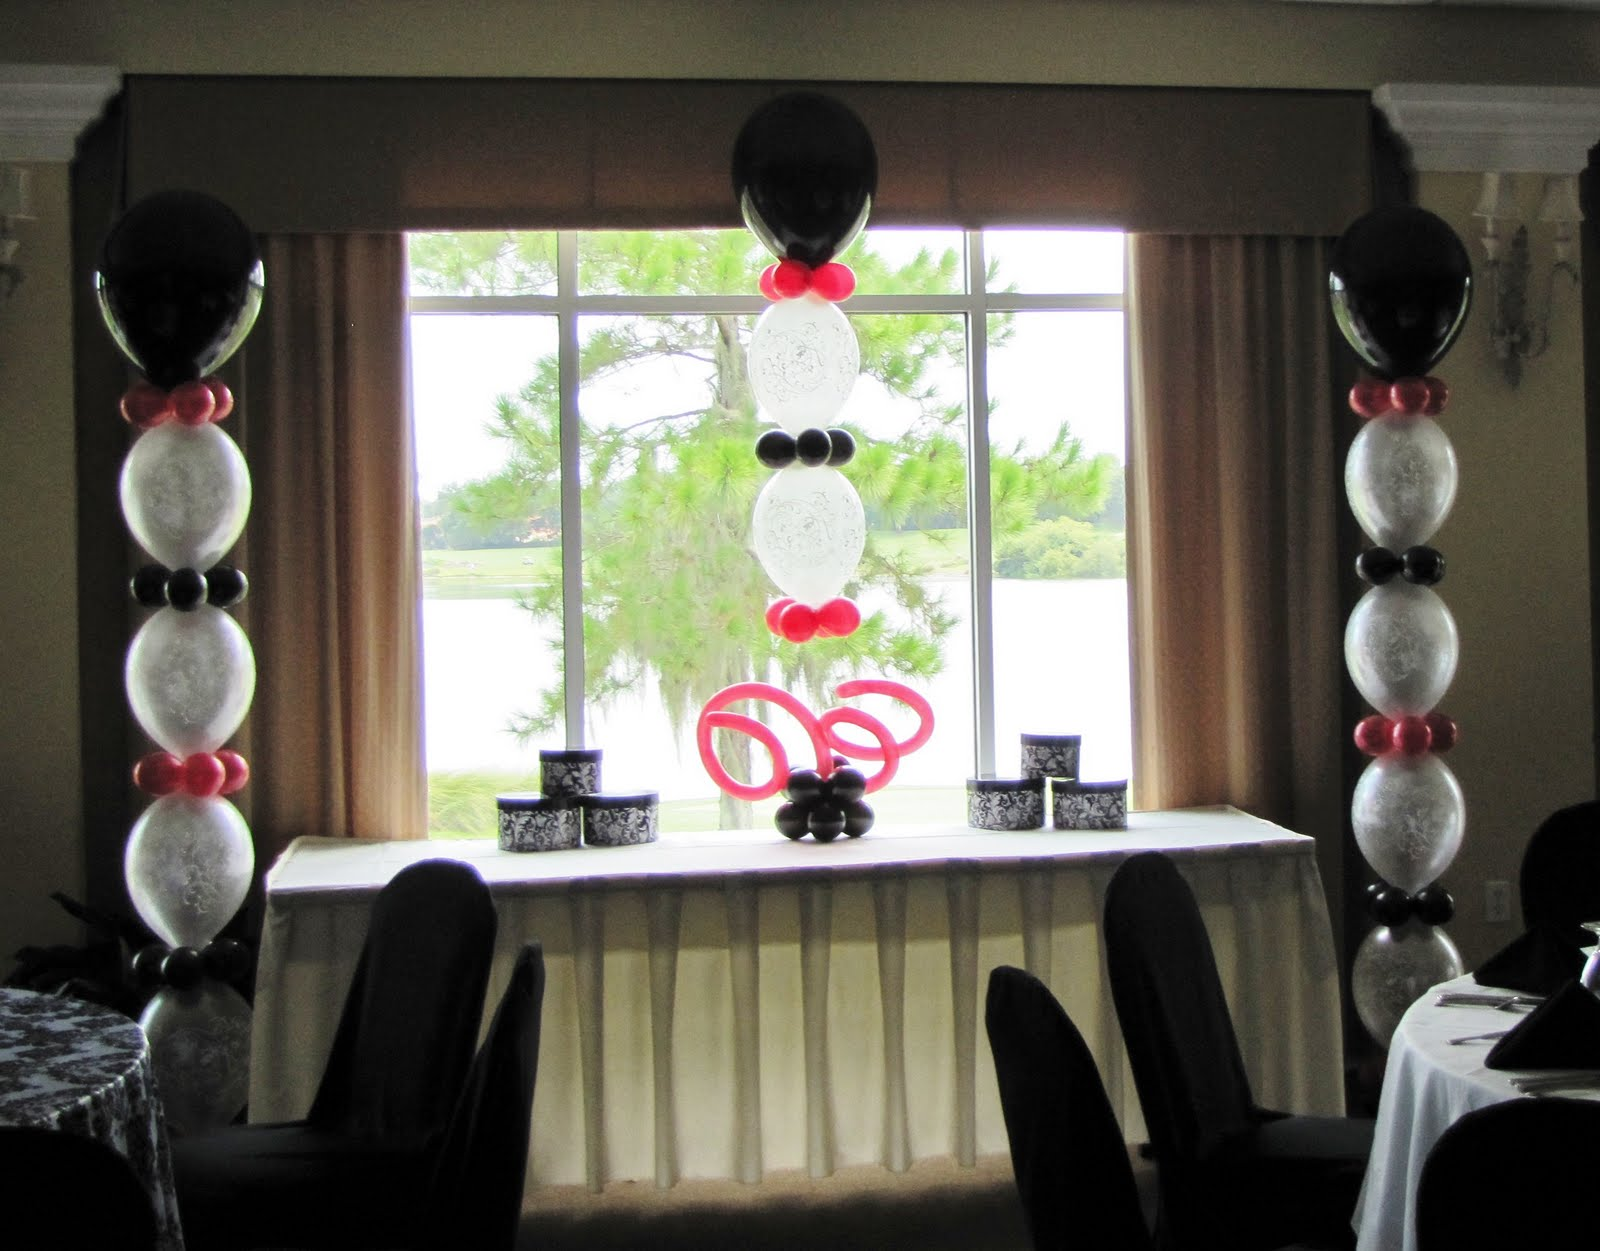 Party People Event Decorating Company: 80th Birthday, Eaglebrooke